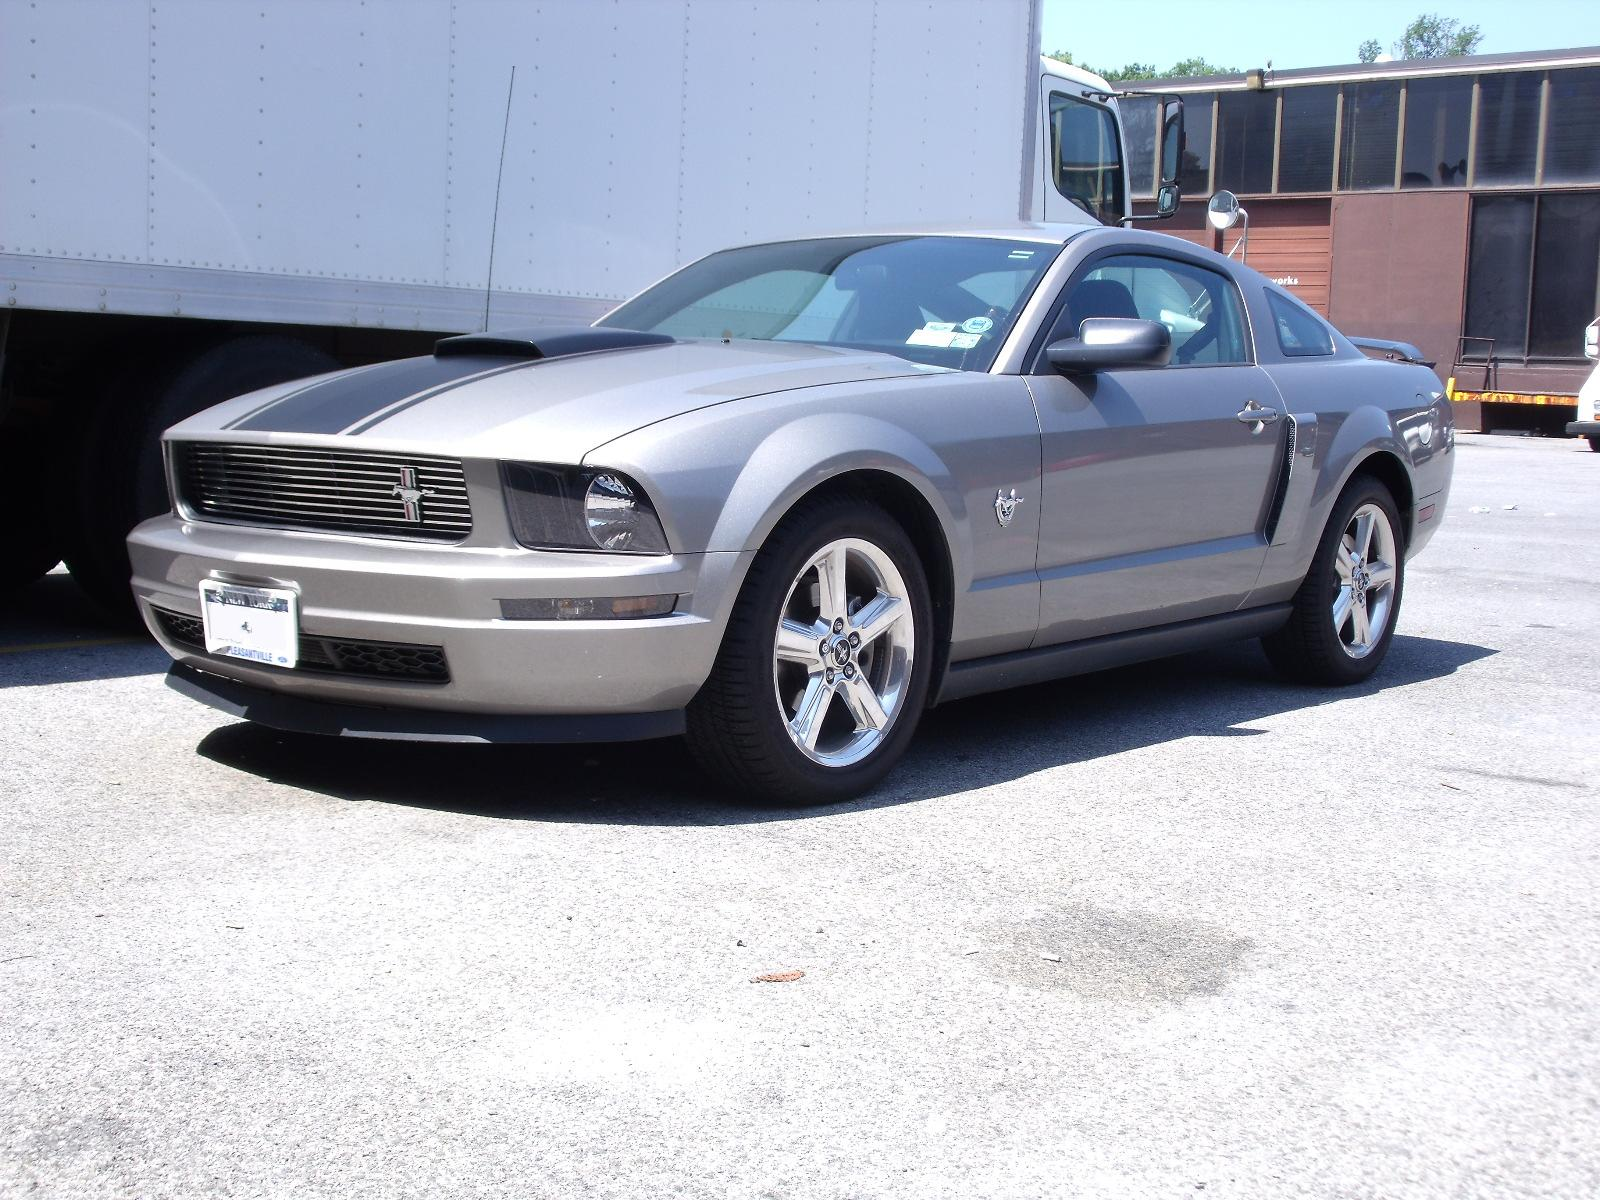 2009 Ford Mustang #10